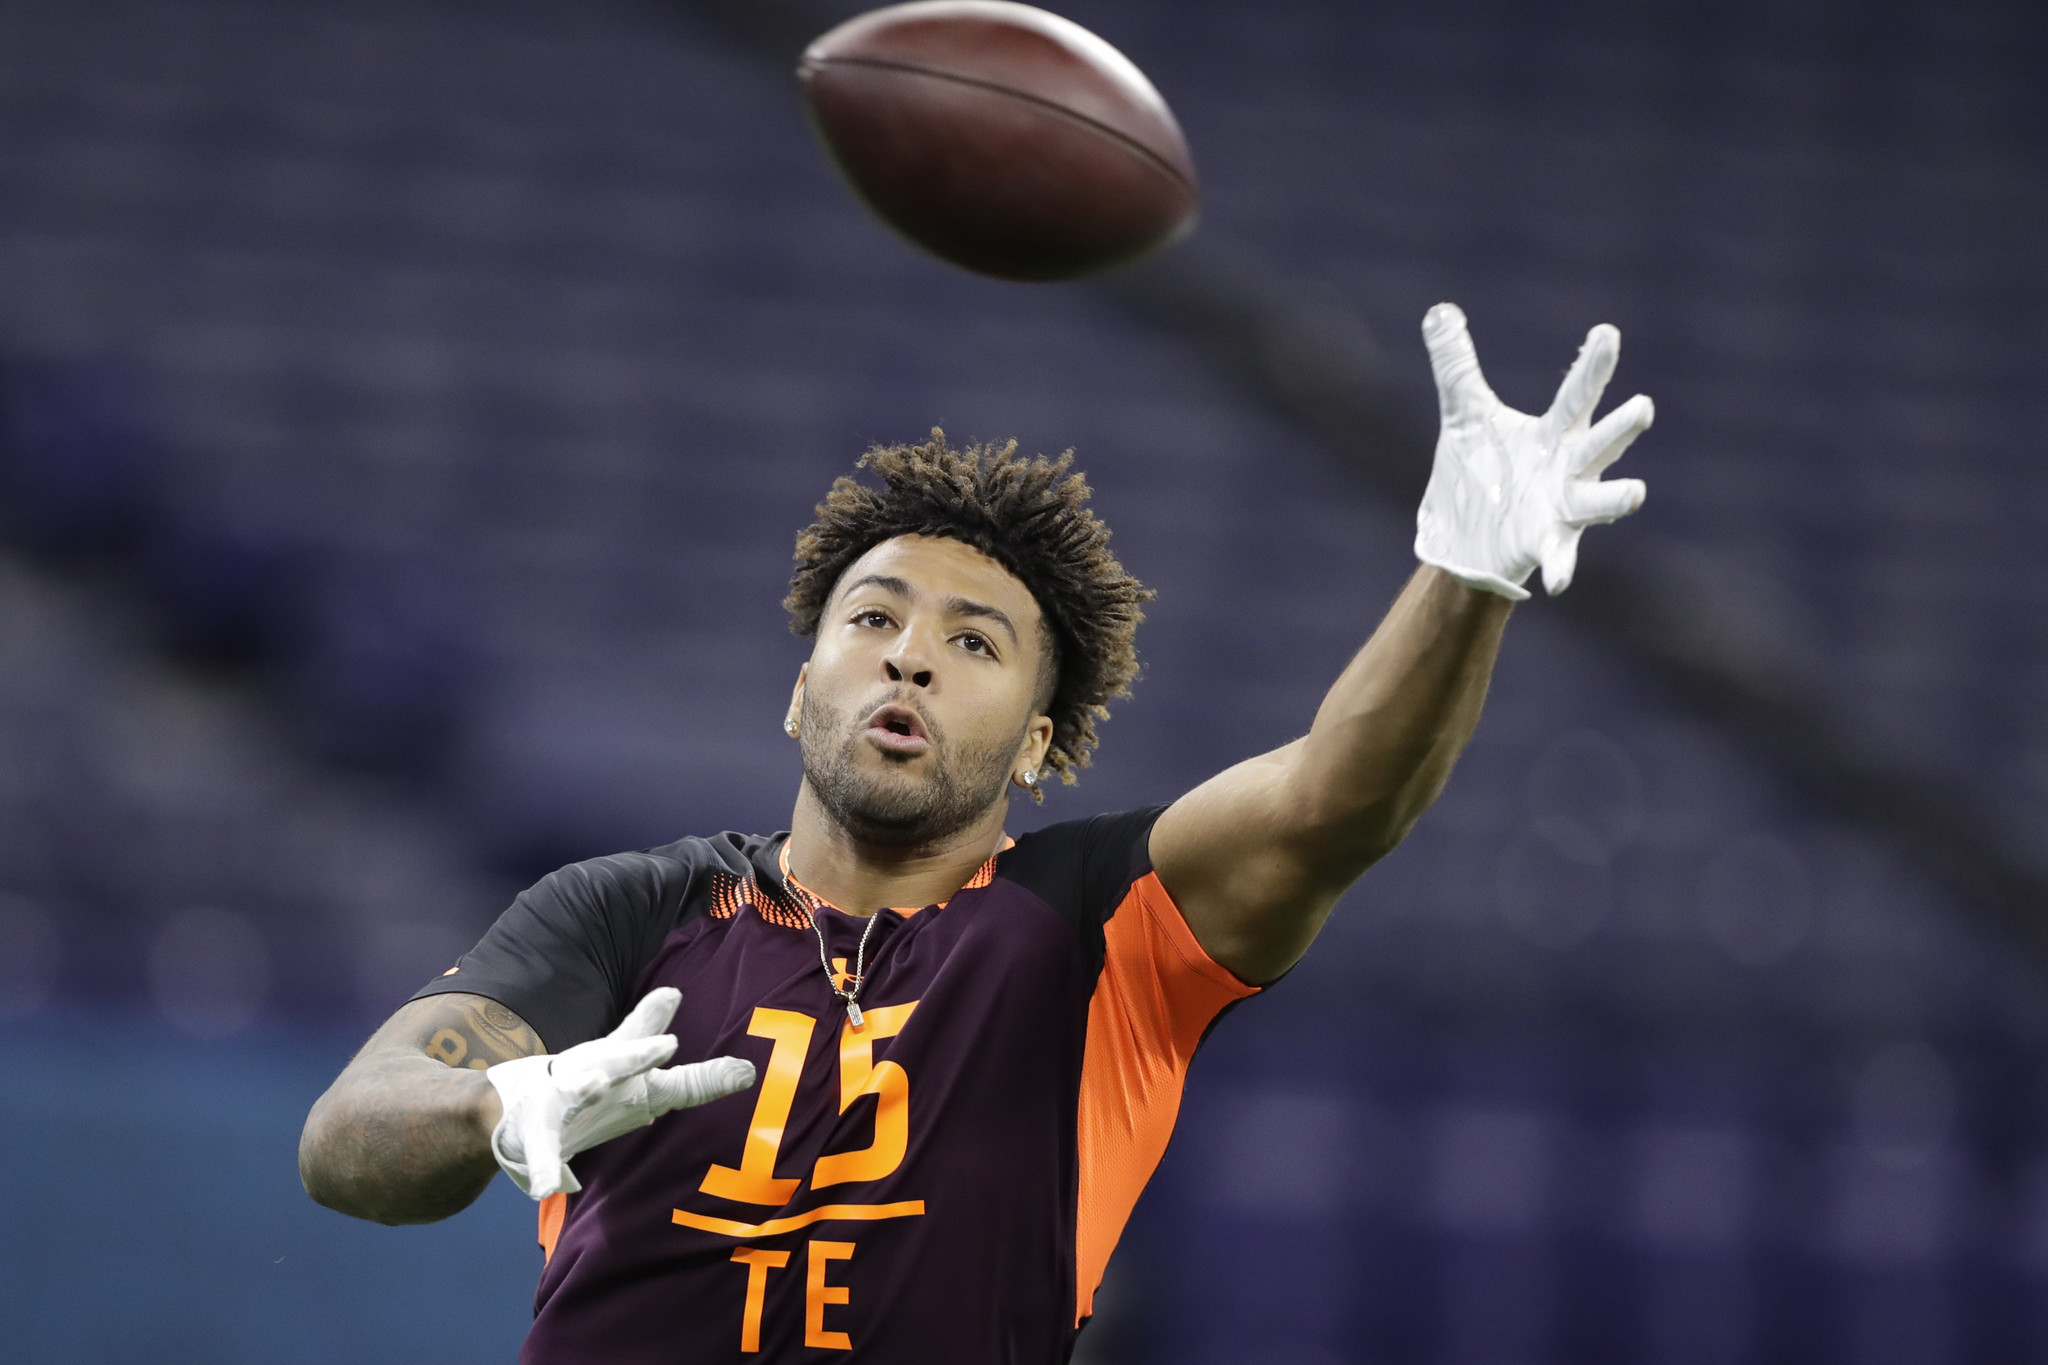 Top-30 prospects in the NFL draft that the Dolphins should be targeting